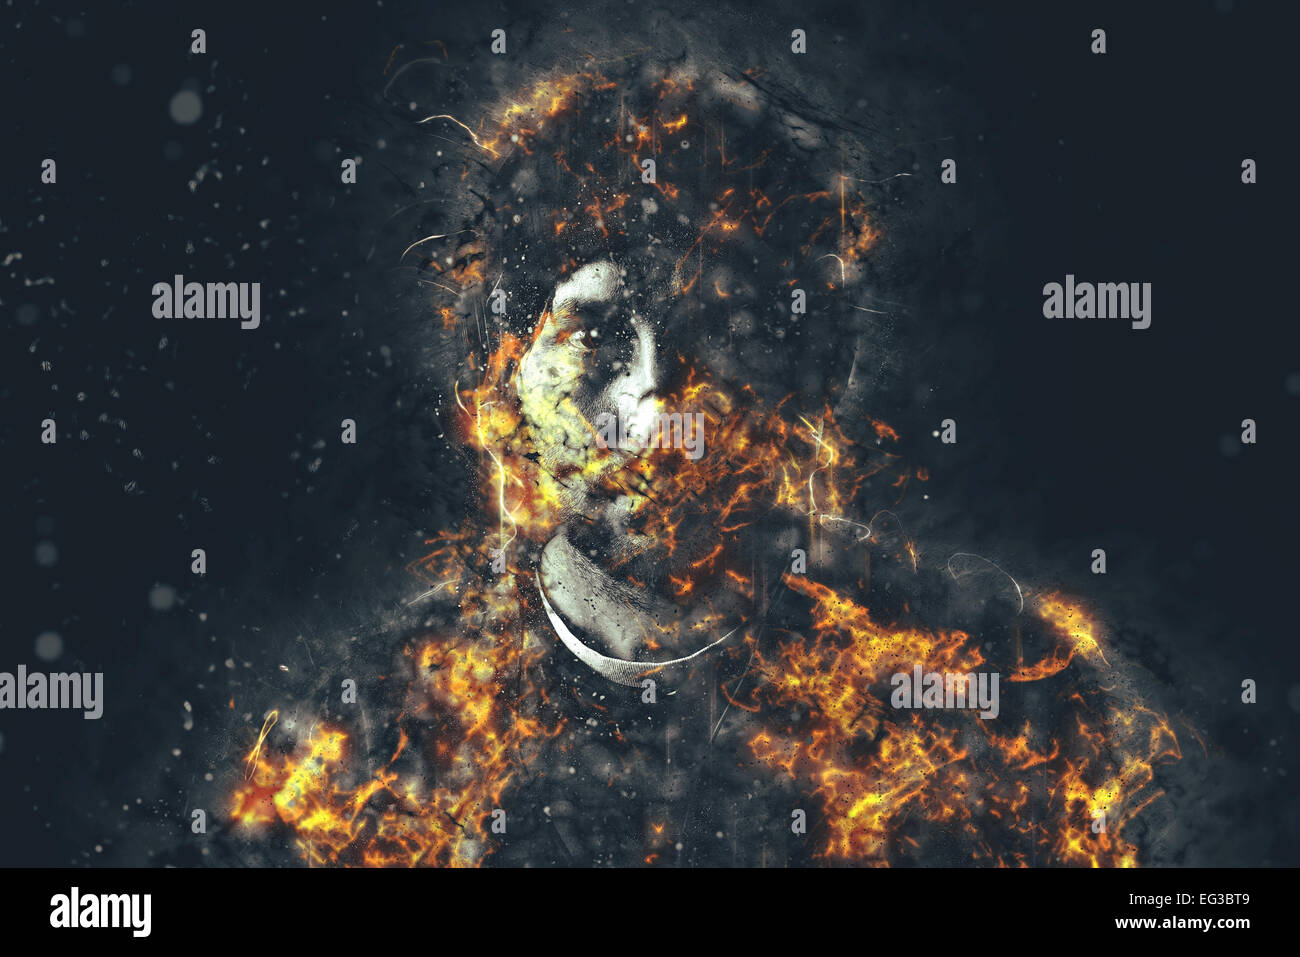 Portrait of urban young adult male in flames, image manipulation. - Stock Image